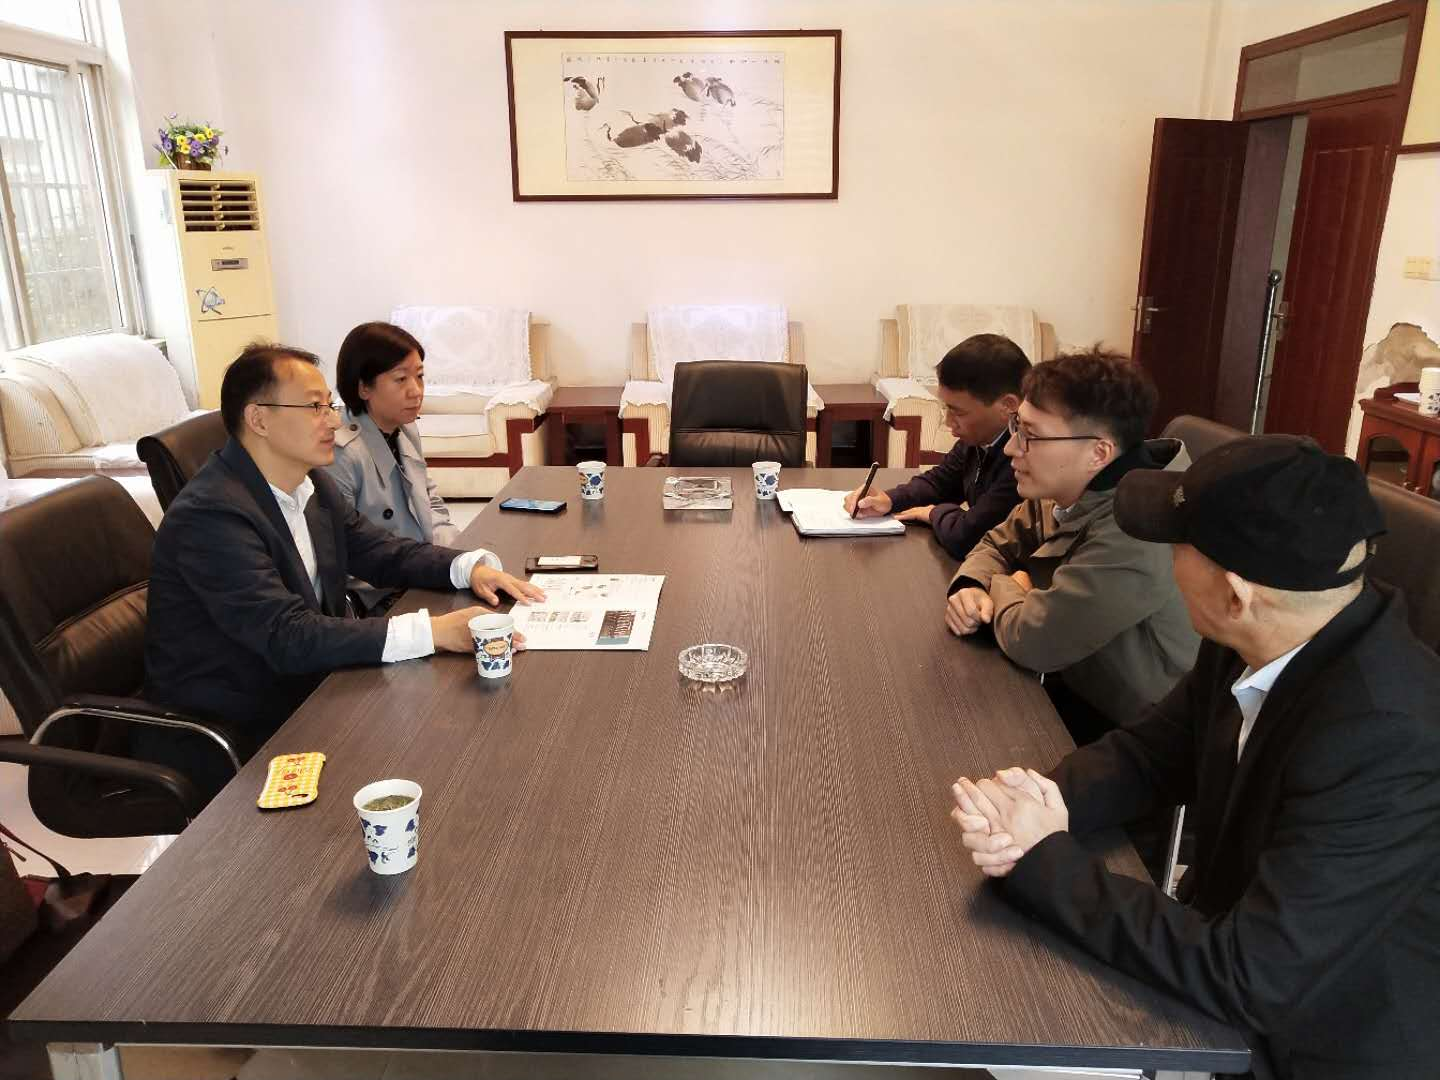 Zhang Yi, Deputy Director of the Trade Development Division of the Provincial Department of Commerce, and Wang Yanni, Section Chief of the Foreign Trade Section of the Municipal Bureau of Commerce, visited Yixiu District for investigation